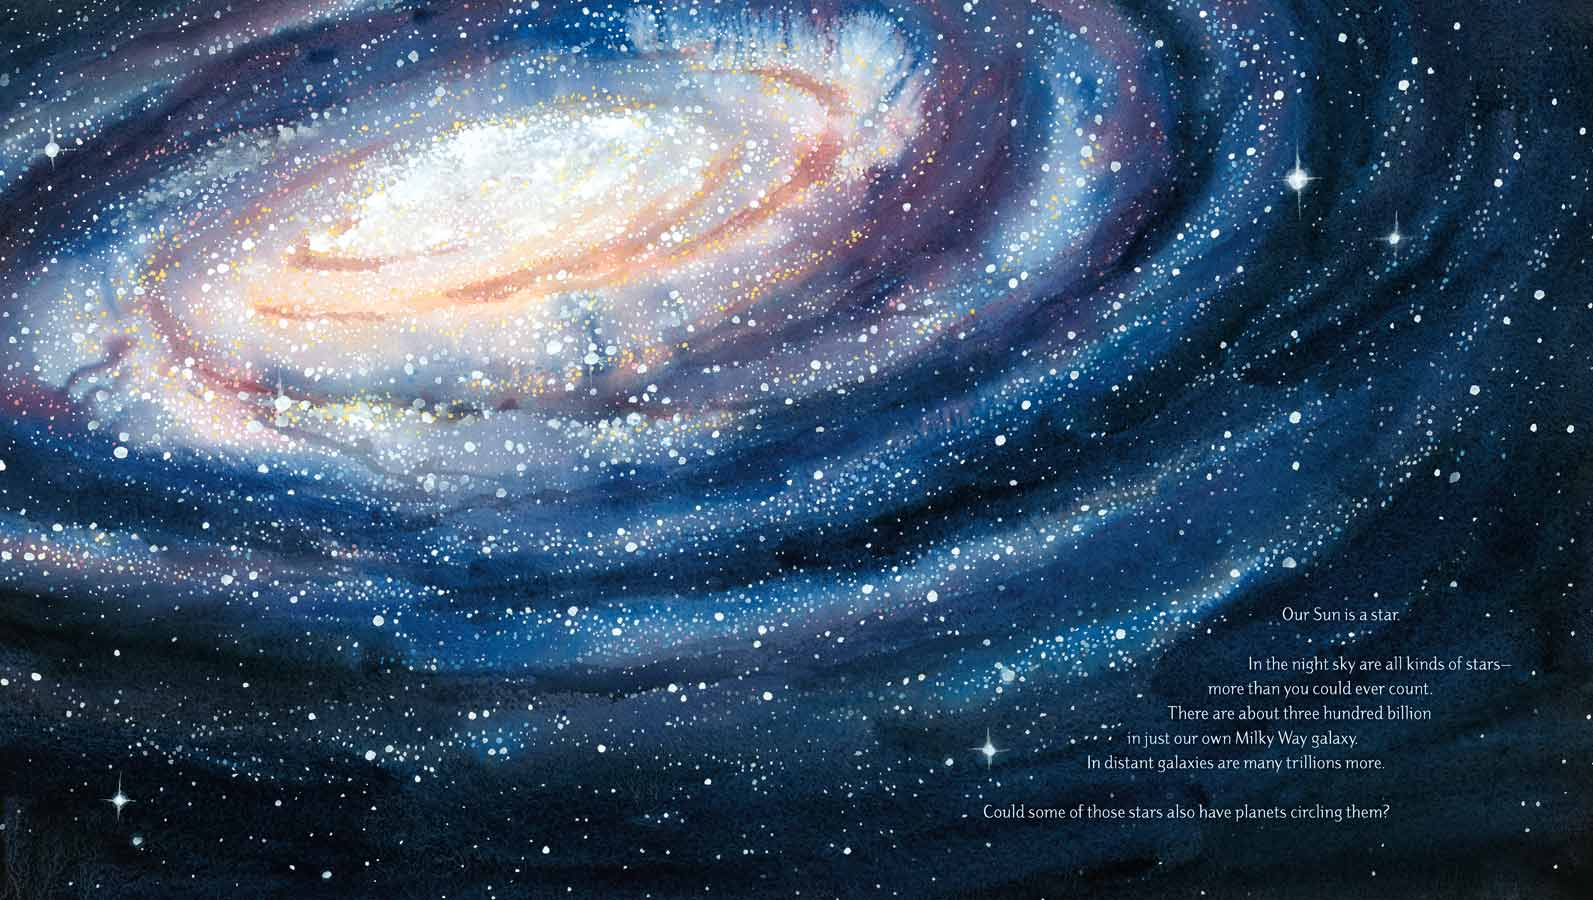 Watercolor illustration from the picture book 'Just Right' of the milky way galaxy.